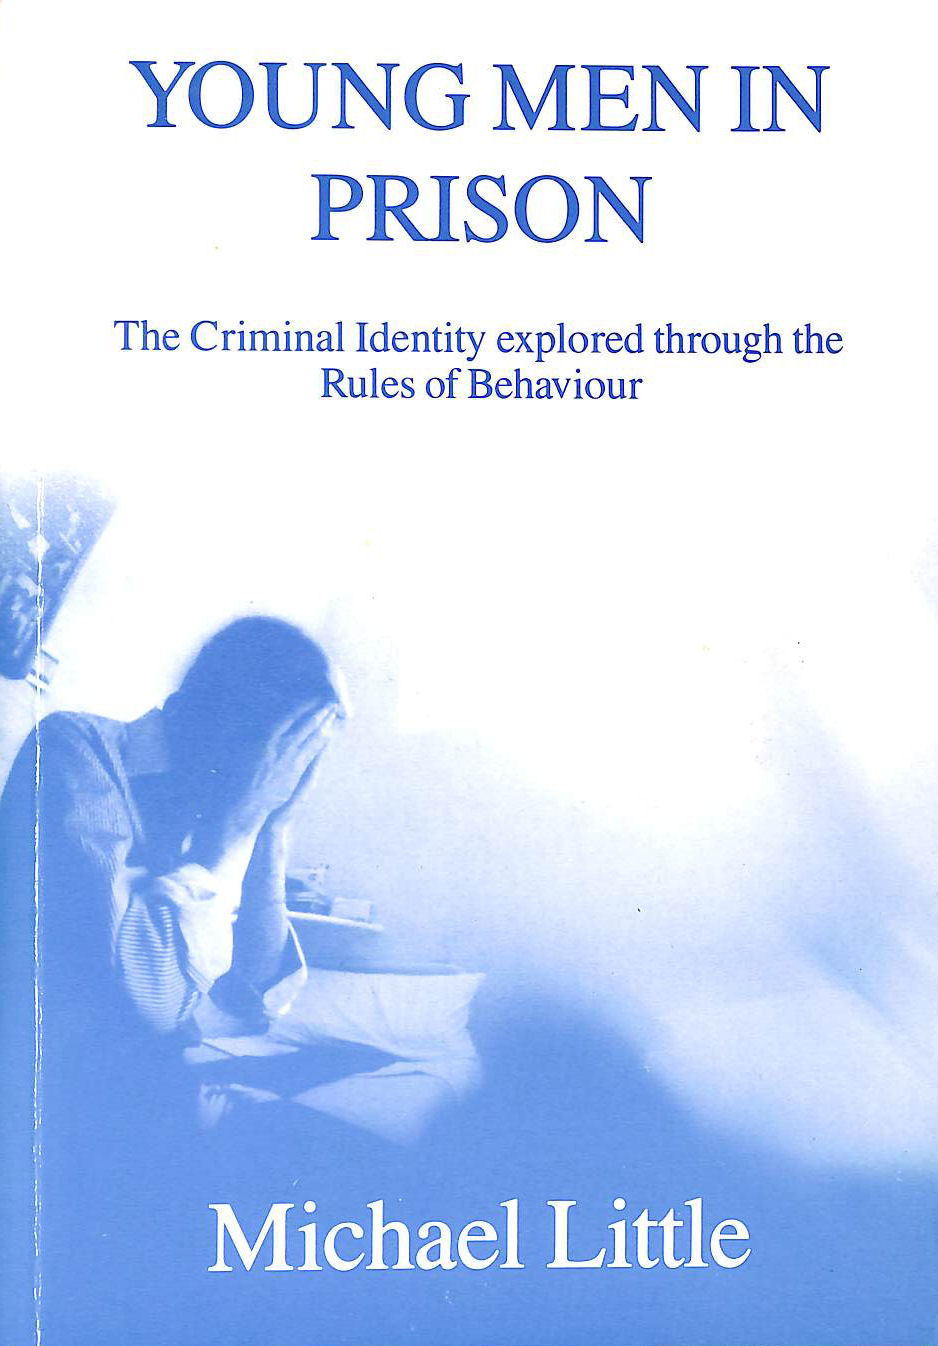 Image for Young Men in Prison: Criminal Identity Explored Through the Rules of Behaviour